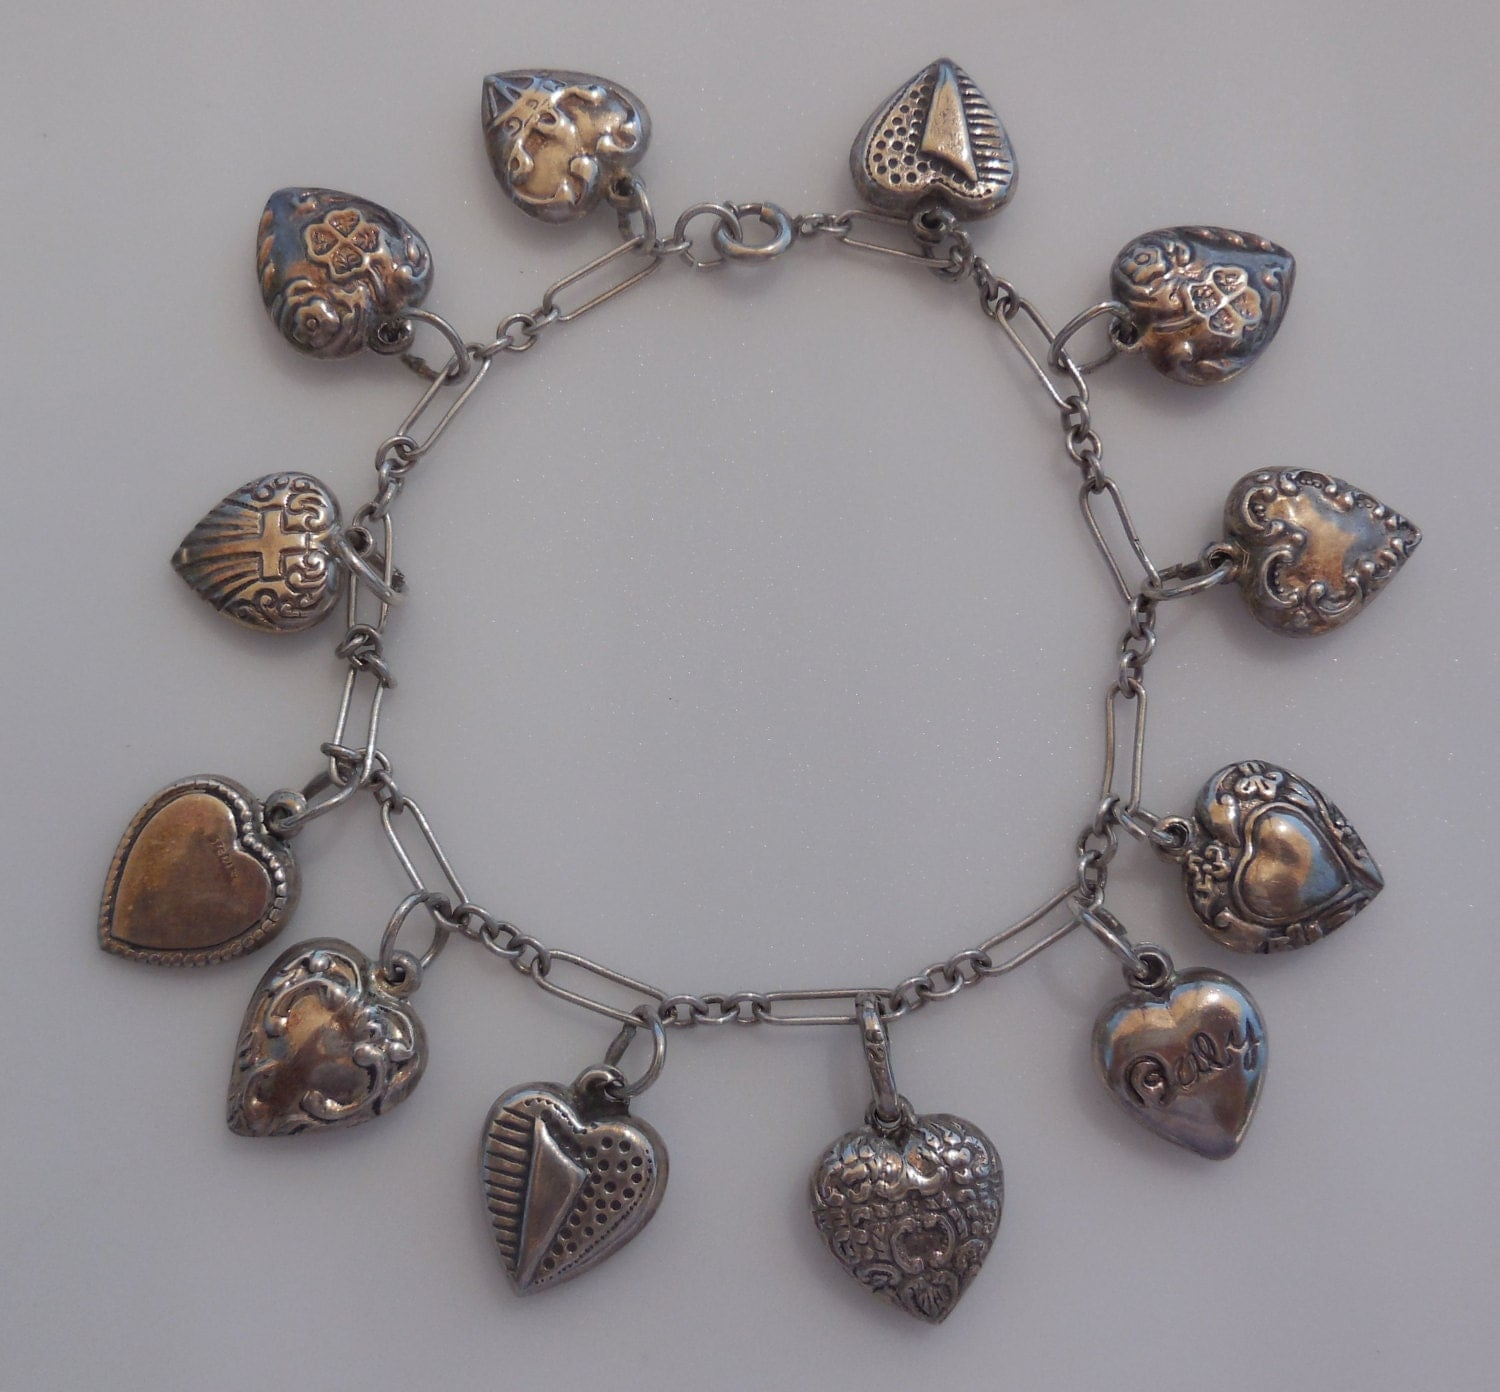 Bracelet With Hearts: Vintage Puffy Heart Charm Bracelet With 12 Heart Charms